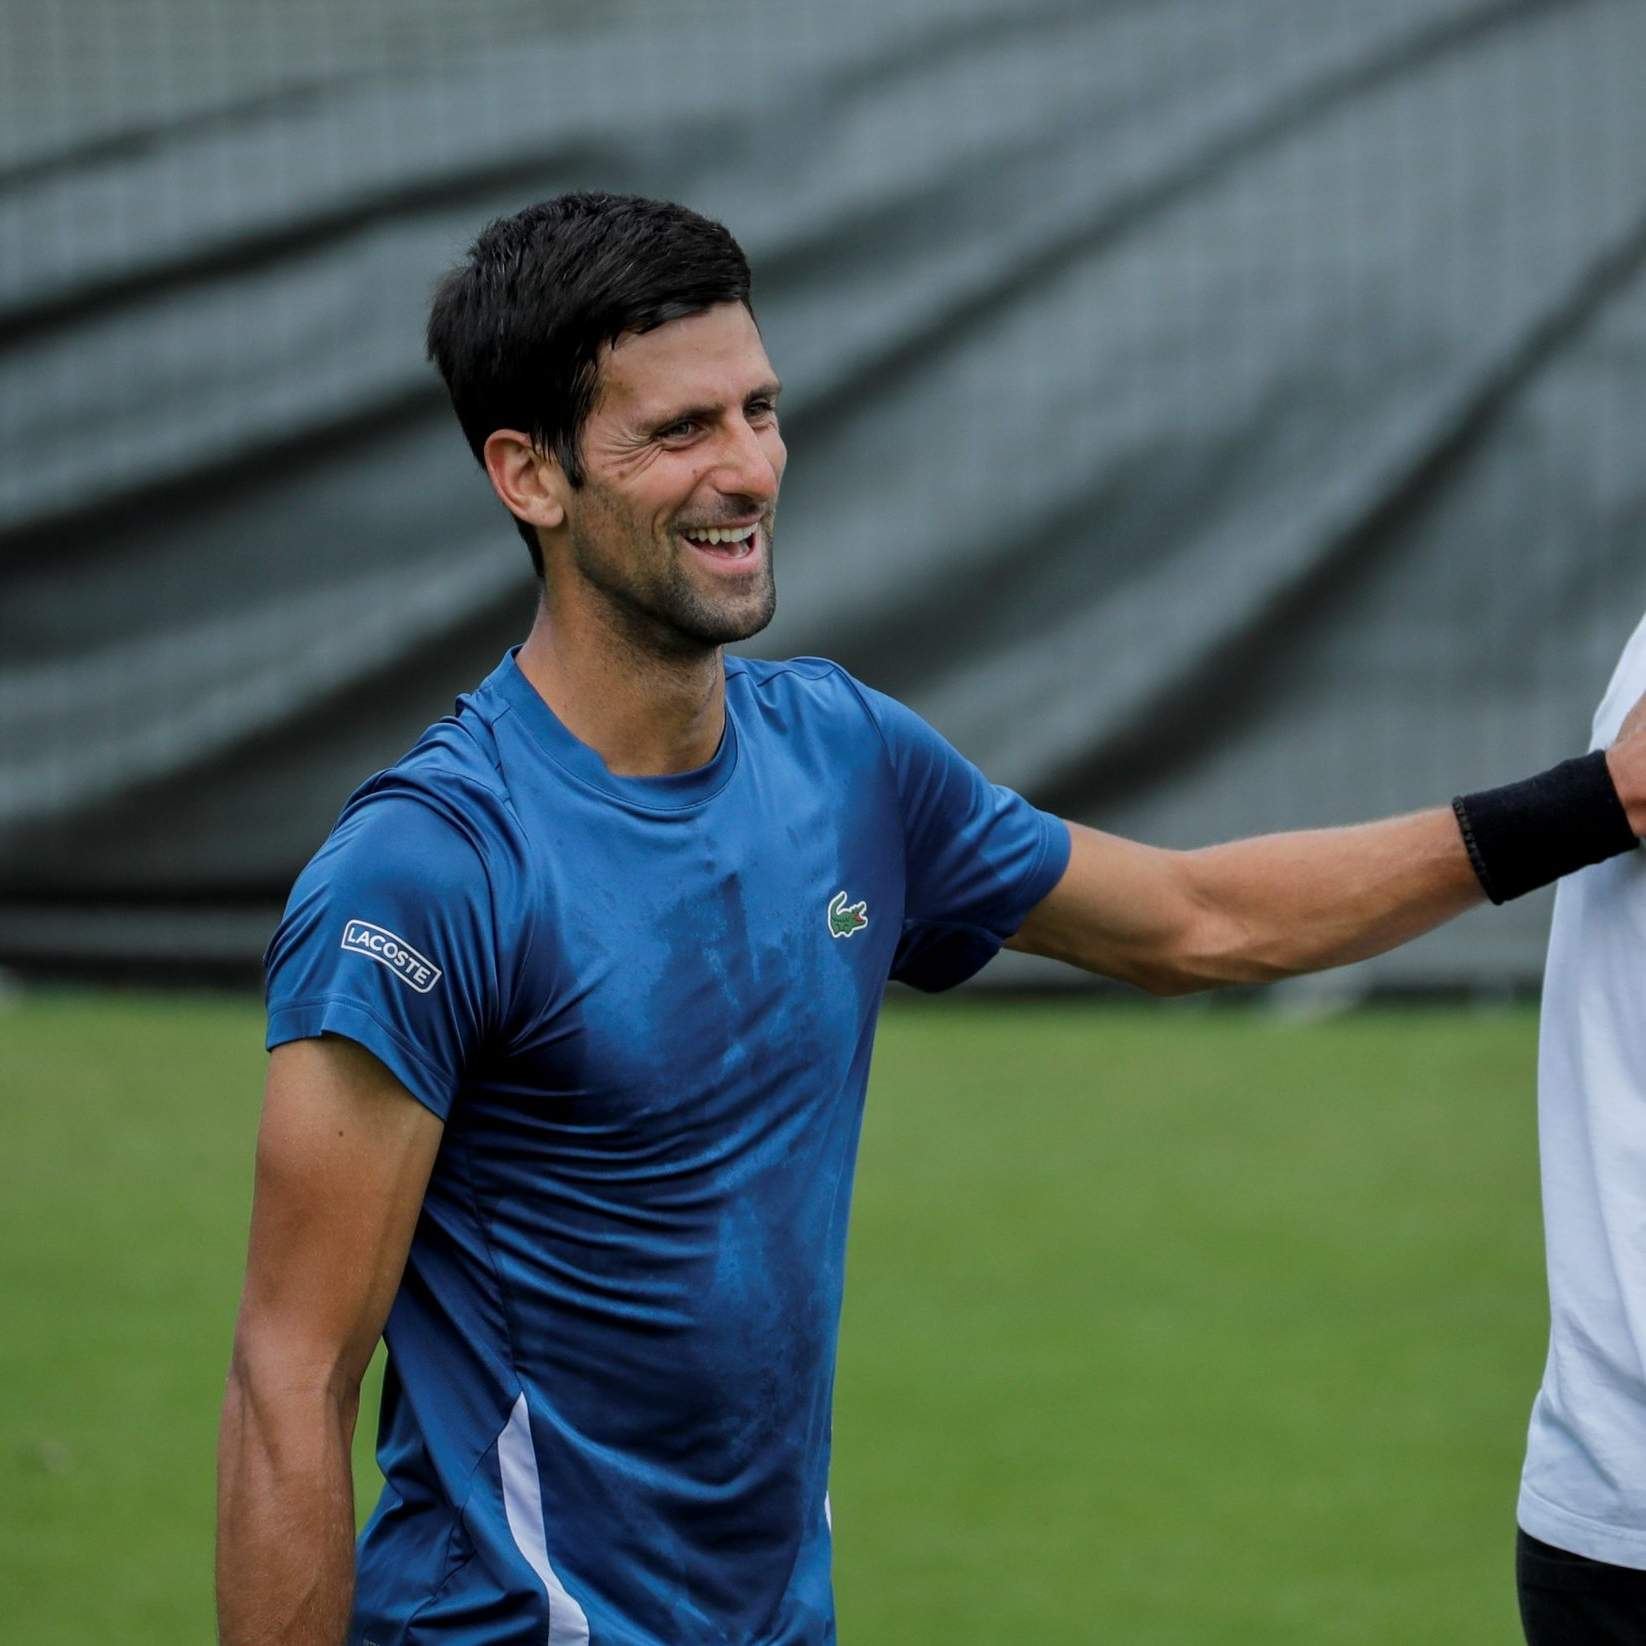 Novak Djokovic Prepares For Another Deep Wimbledon Run